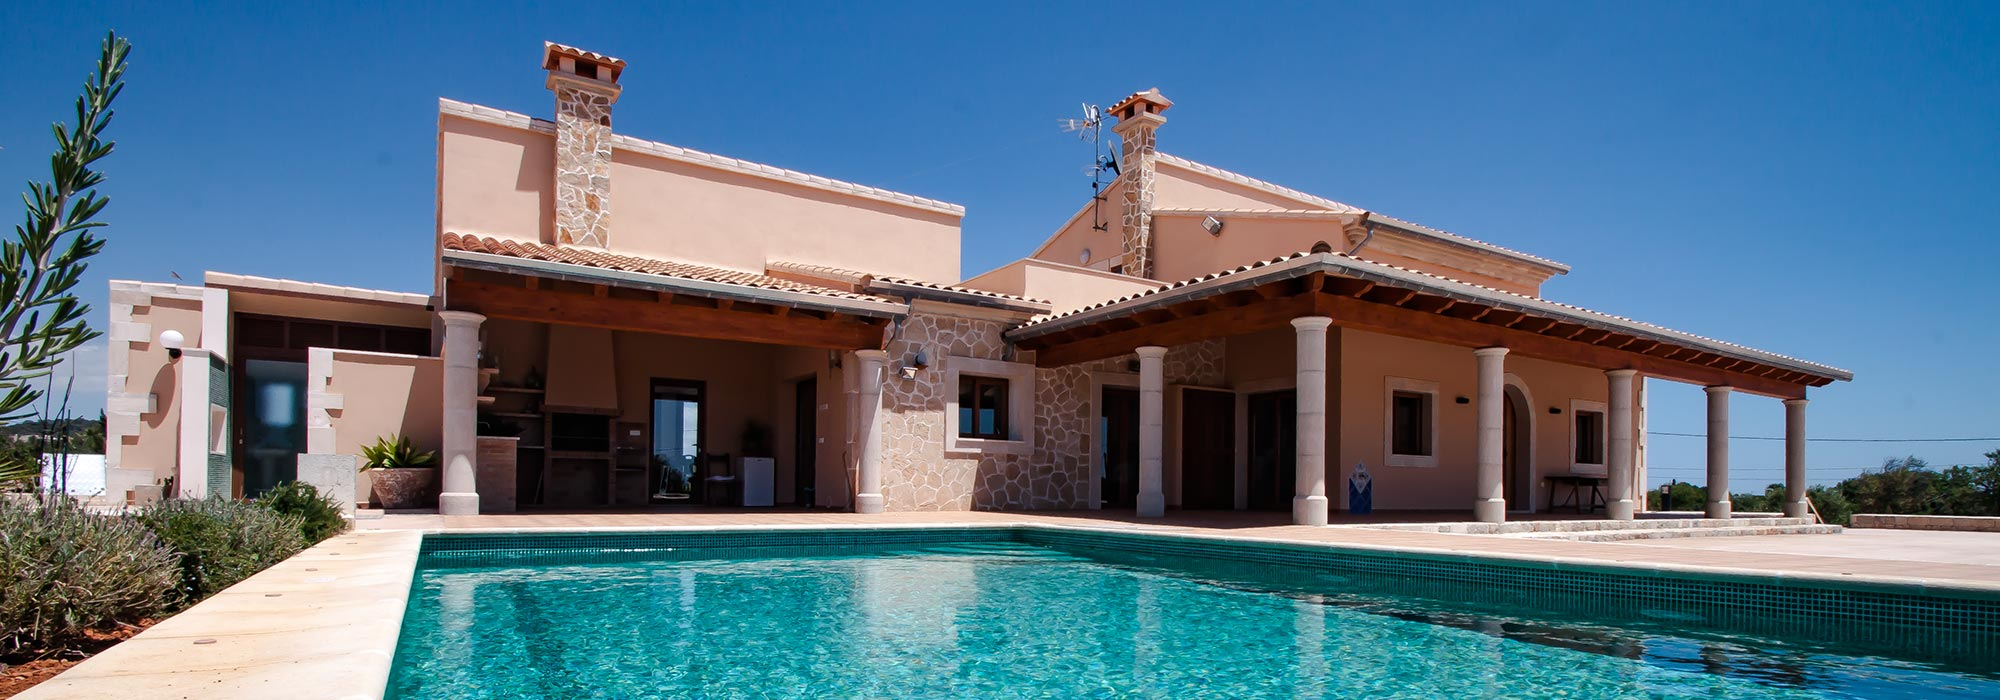 Brand new finca with pool, partially natural stone cladding, in a quiet location with sea views close to Calonge